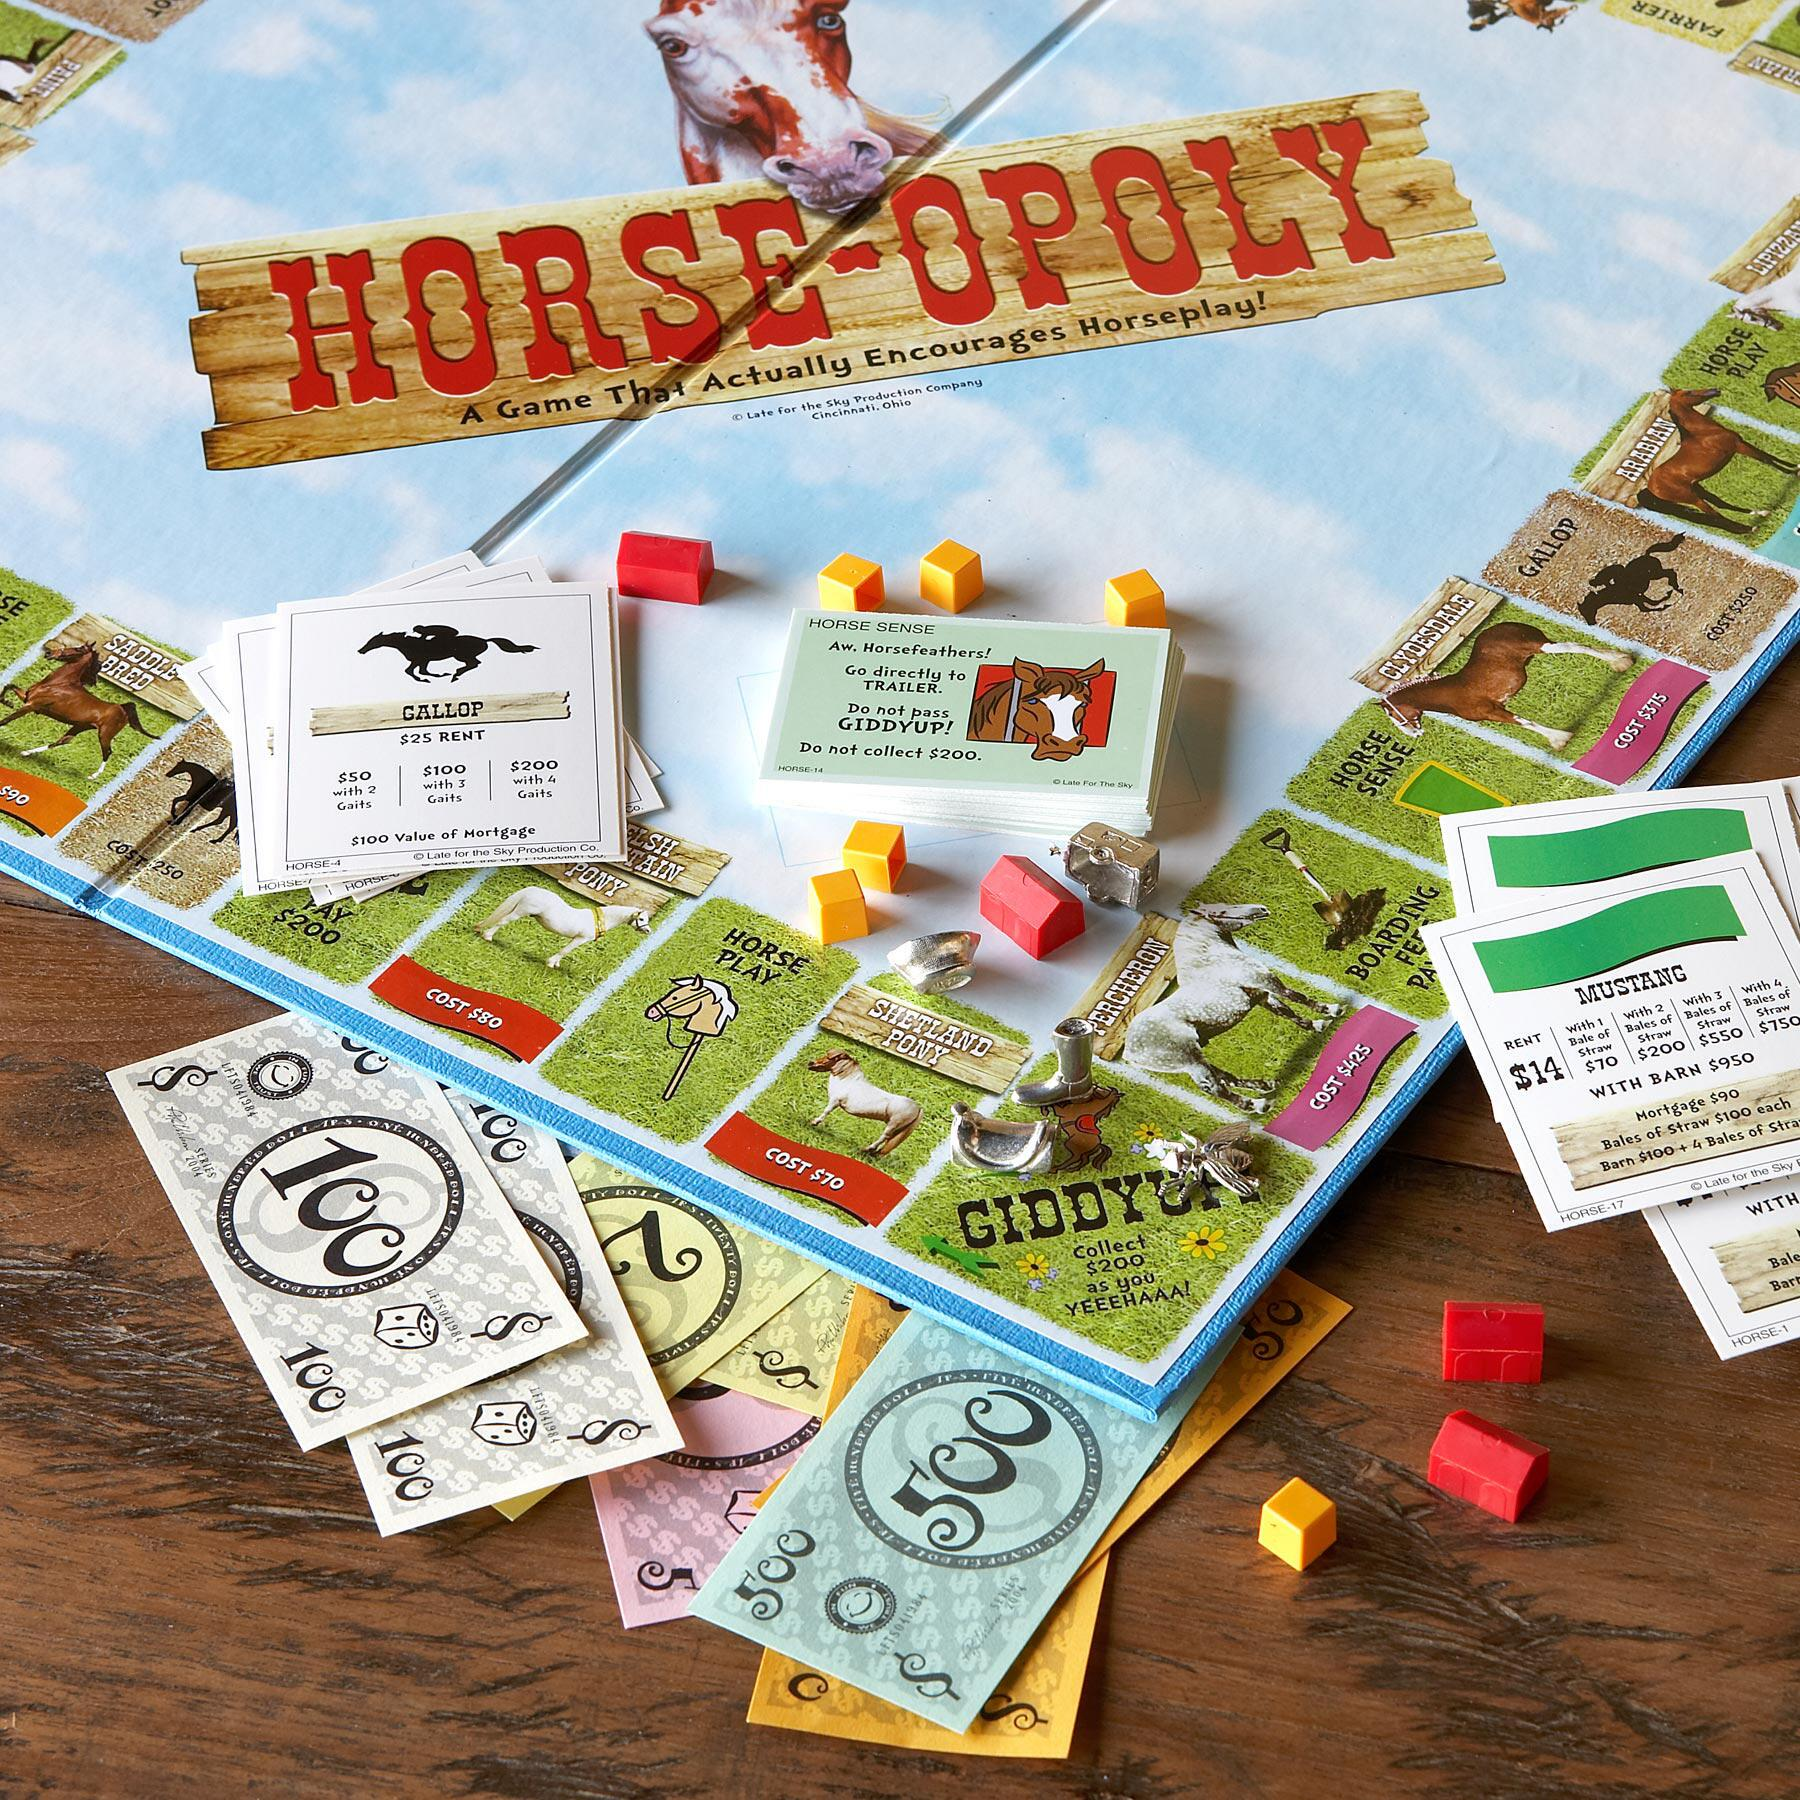 HORSE-OPOLY GAME: View 2